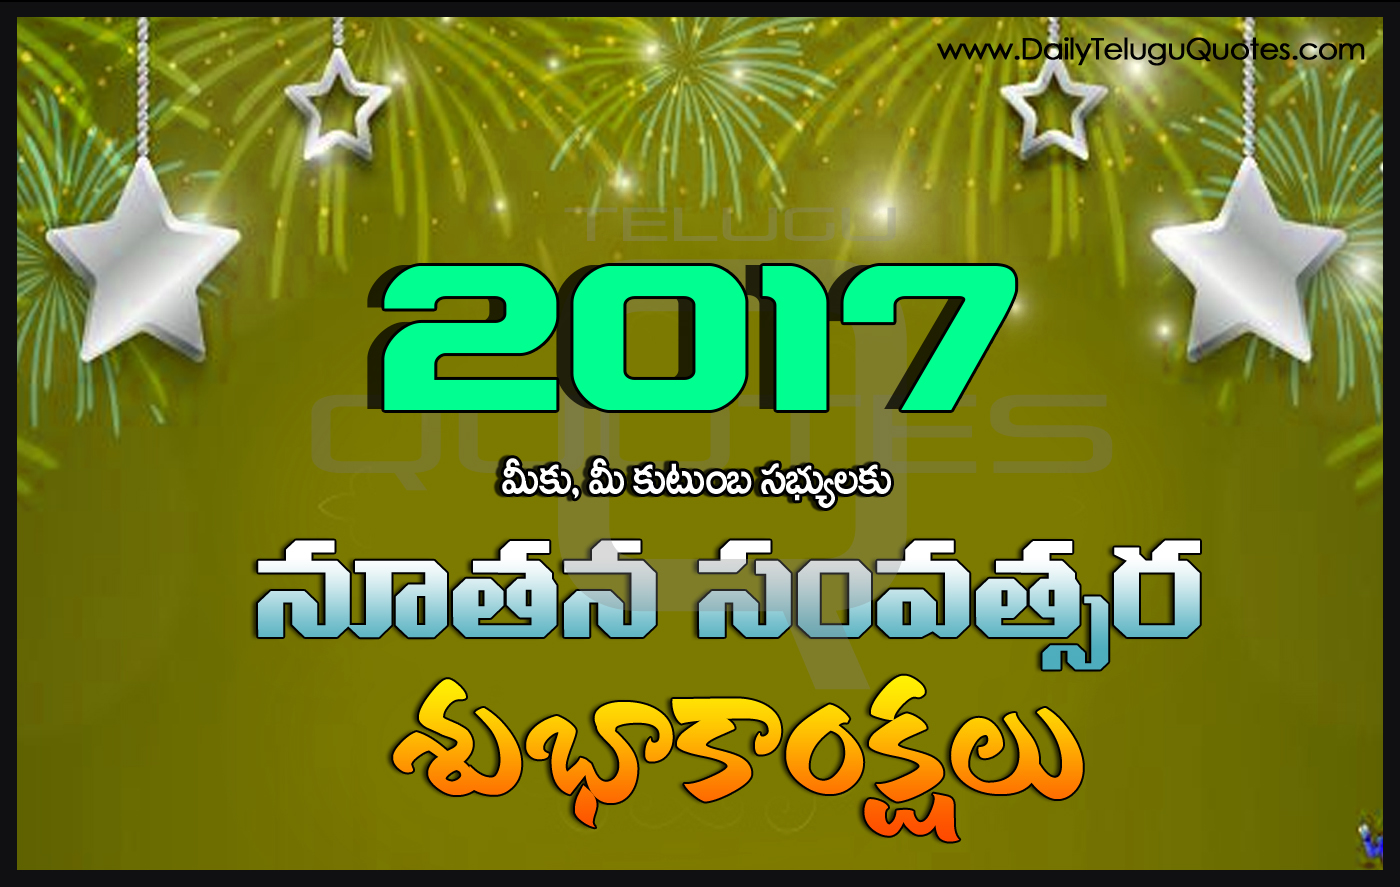 Happy New Year Hd Images 2017 Wishes In Telugu Best New Year